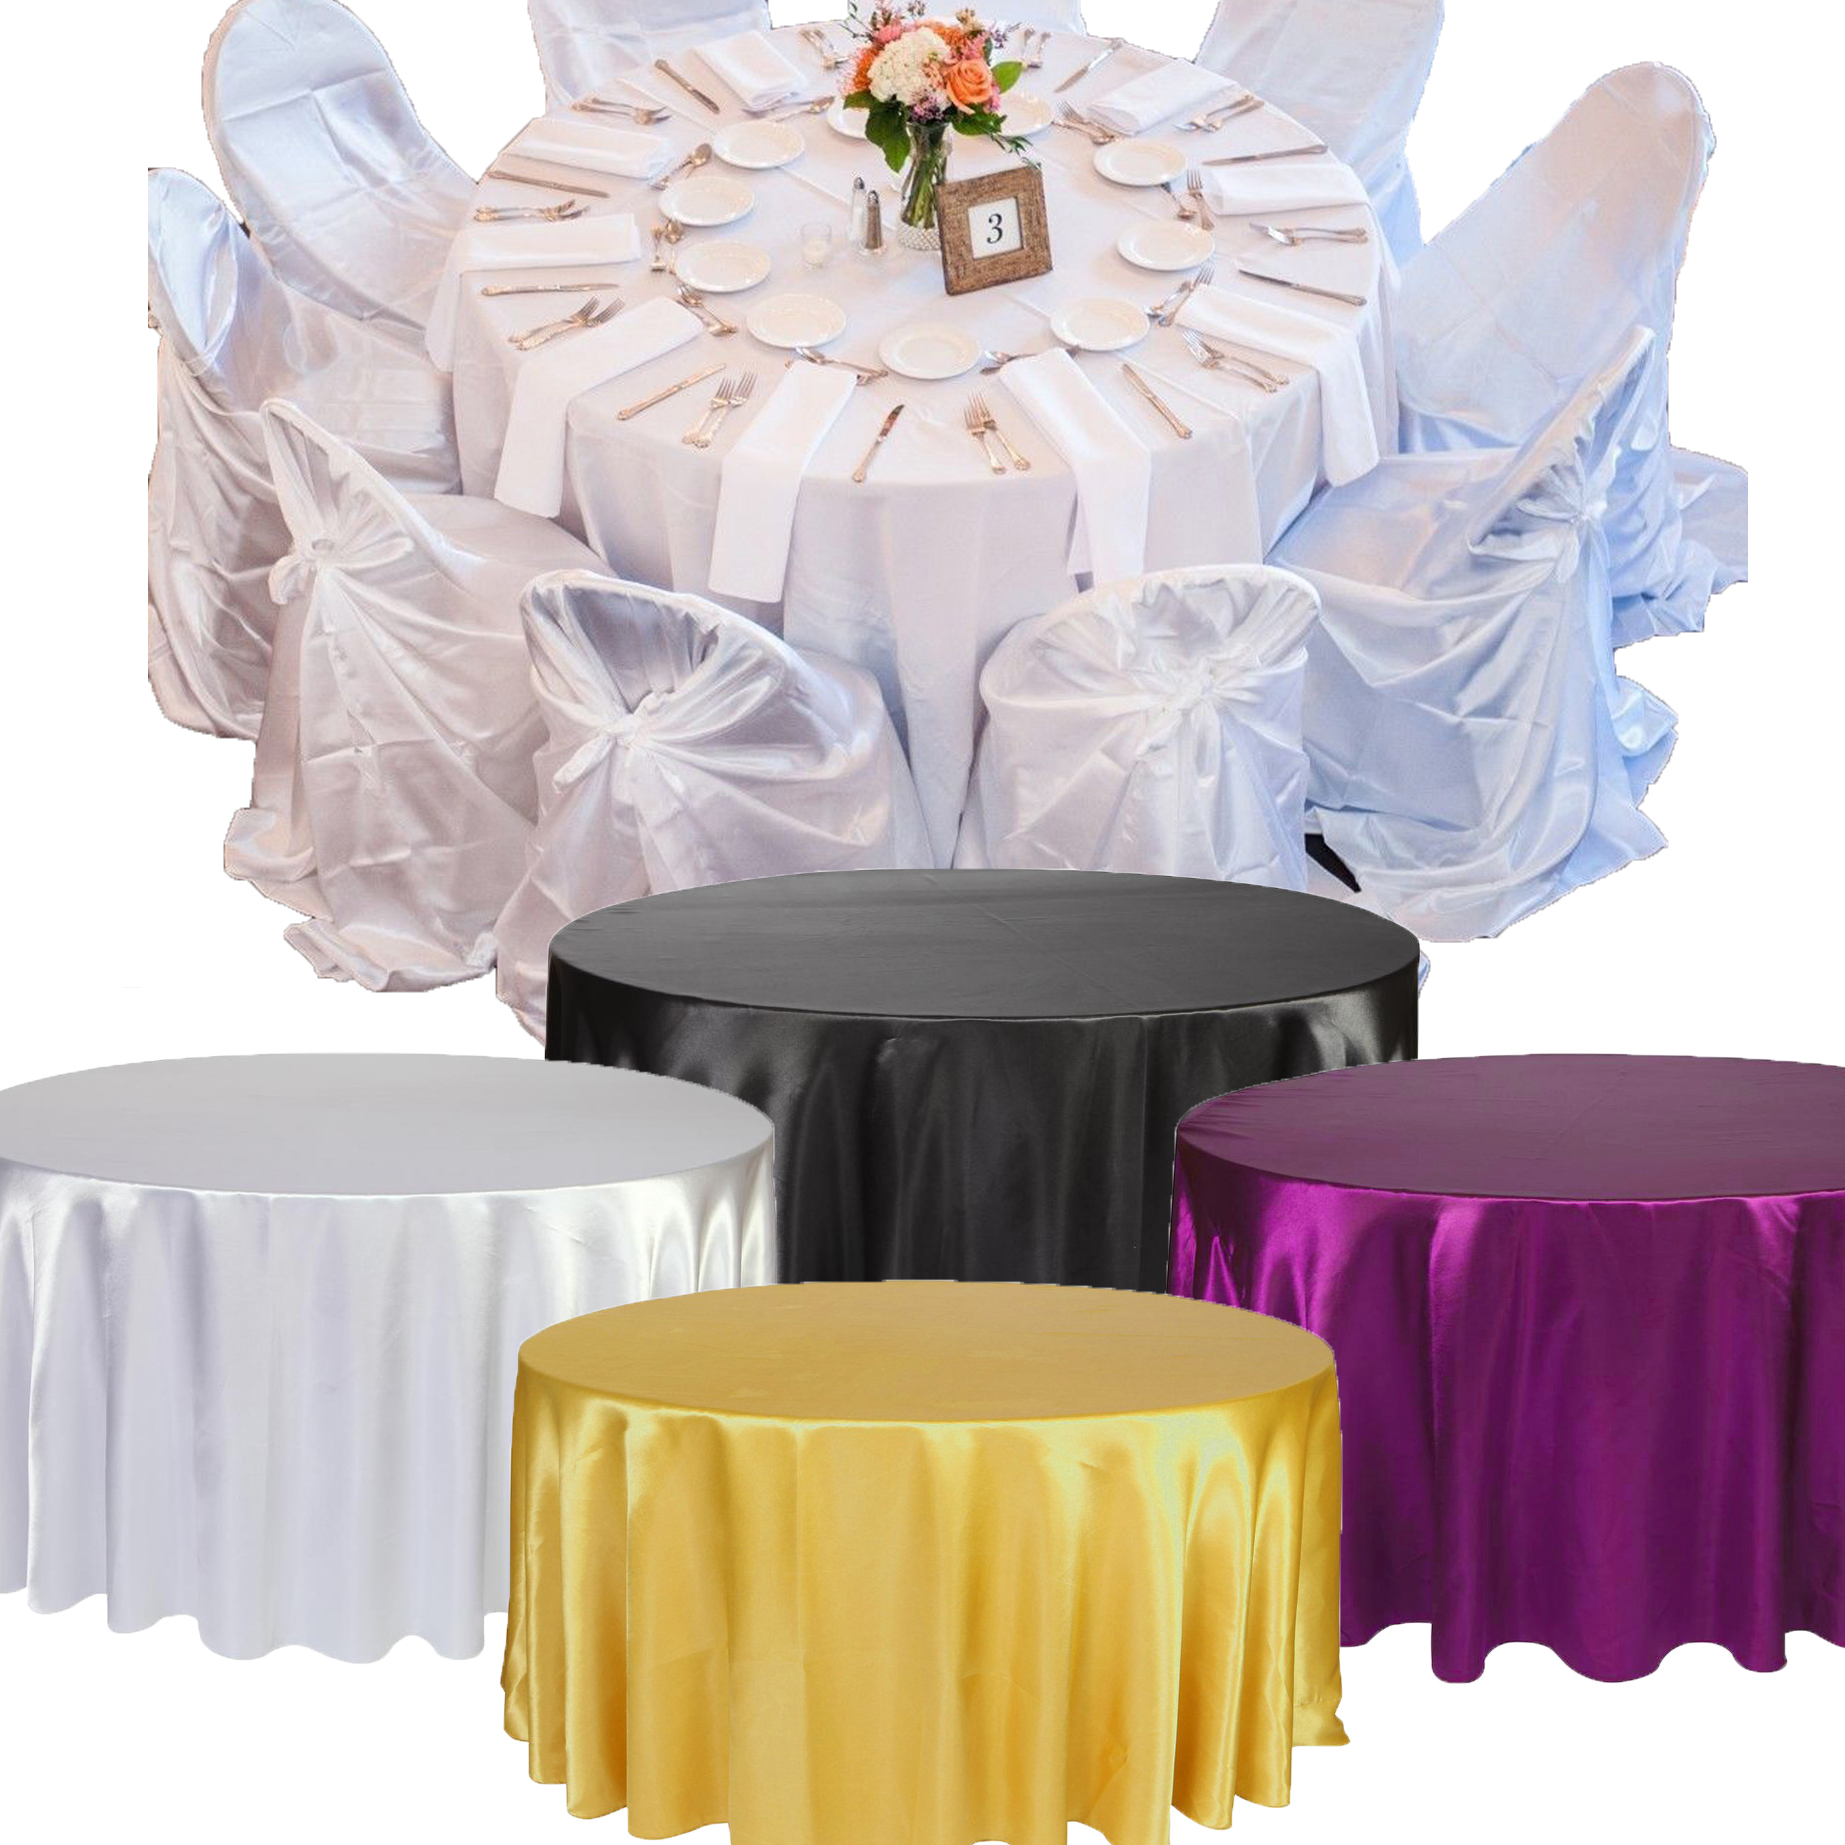 57'' 145cm Diameter Solid Color For Wedding Birthday Party Table Cover Round Table Cloth Home Decor Party Toys